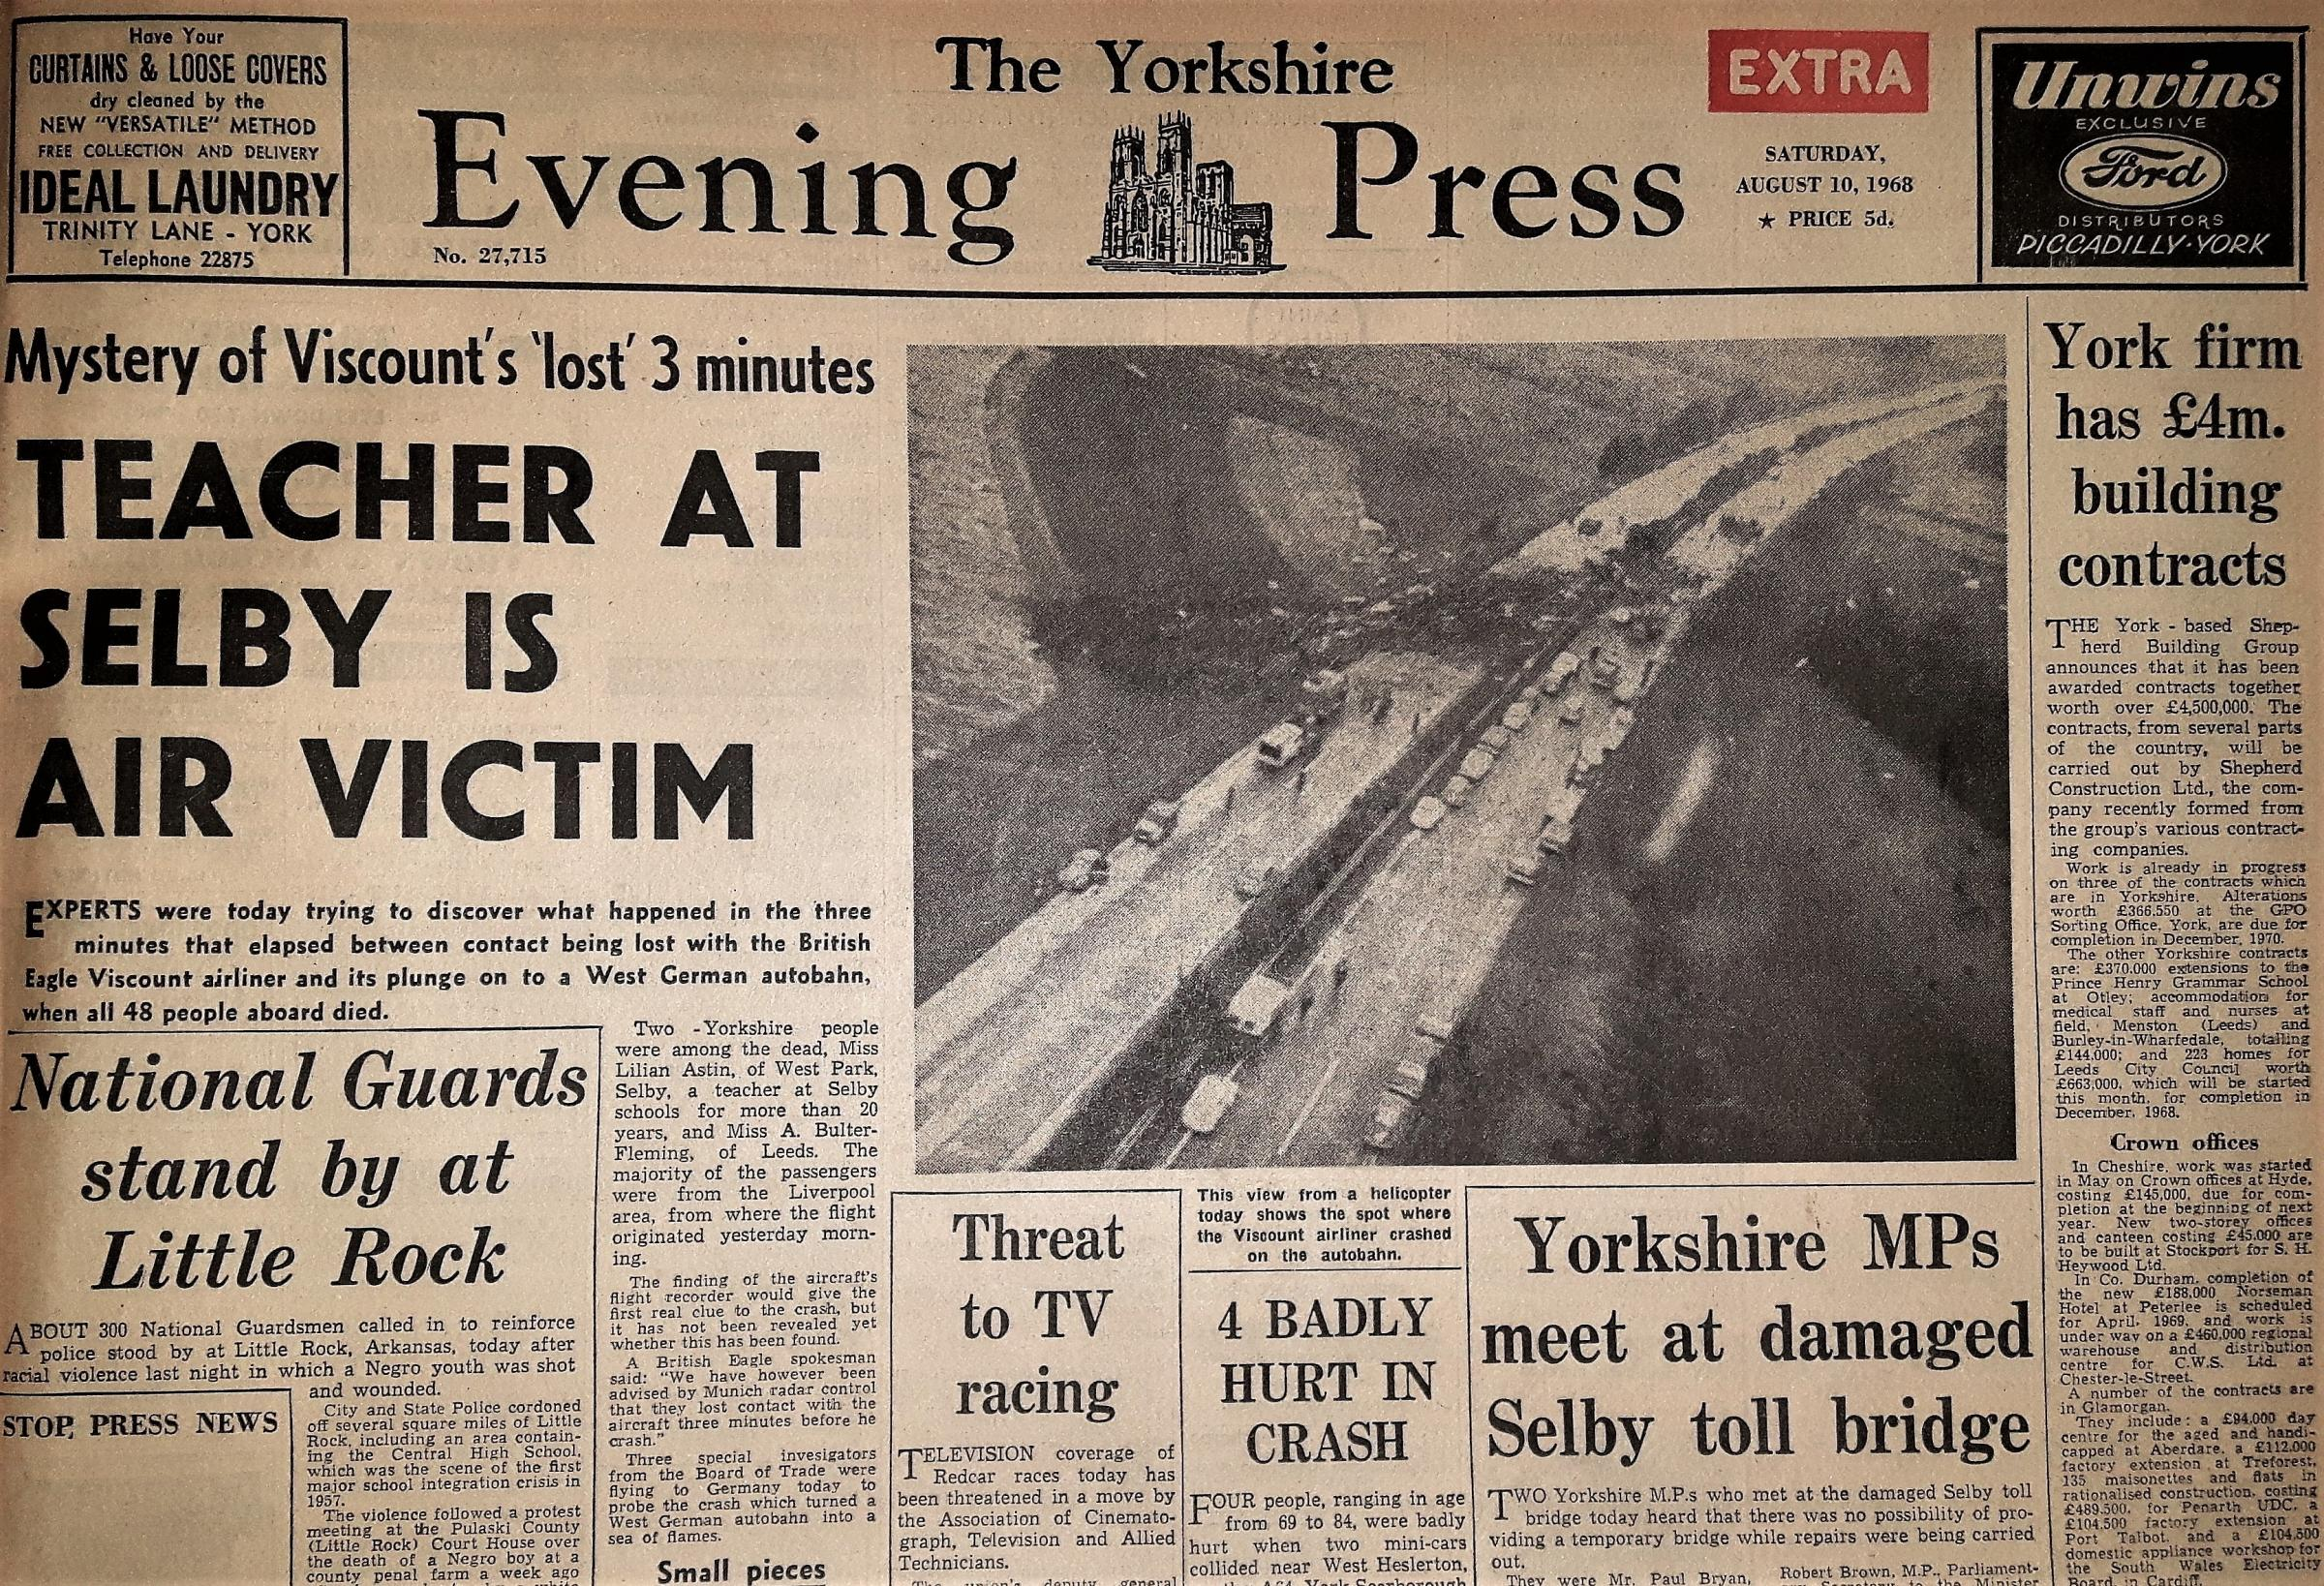 The Yorkshire Evening Press front page from August 10, 1968